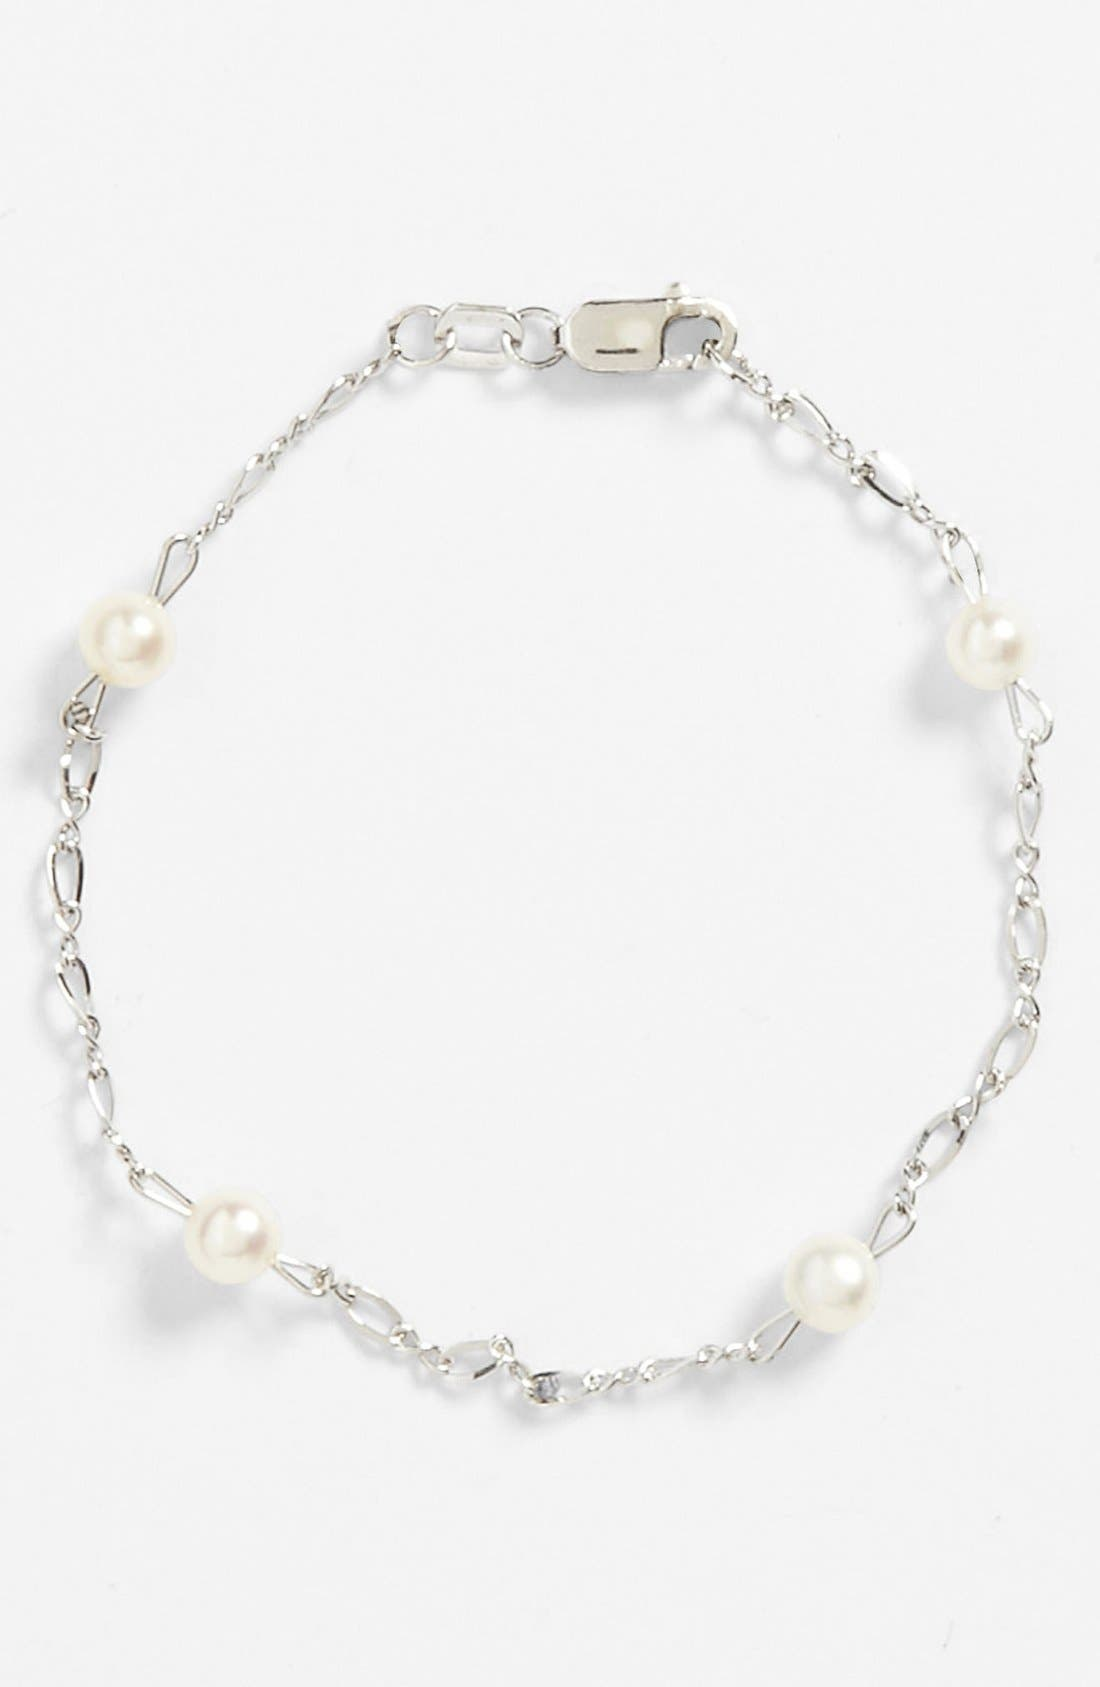 Sterling Silver & Cultured Pearl Bracelet,                             Main thumbnail 1, color,                             WHITE